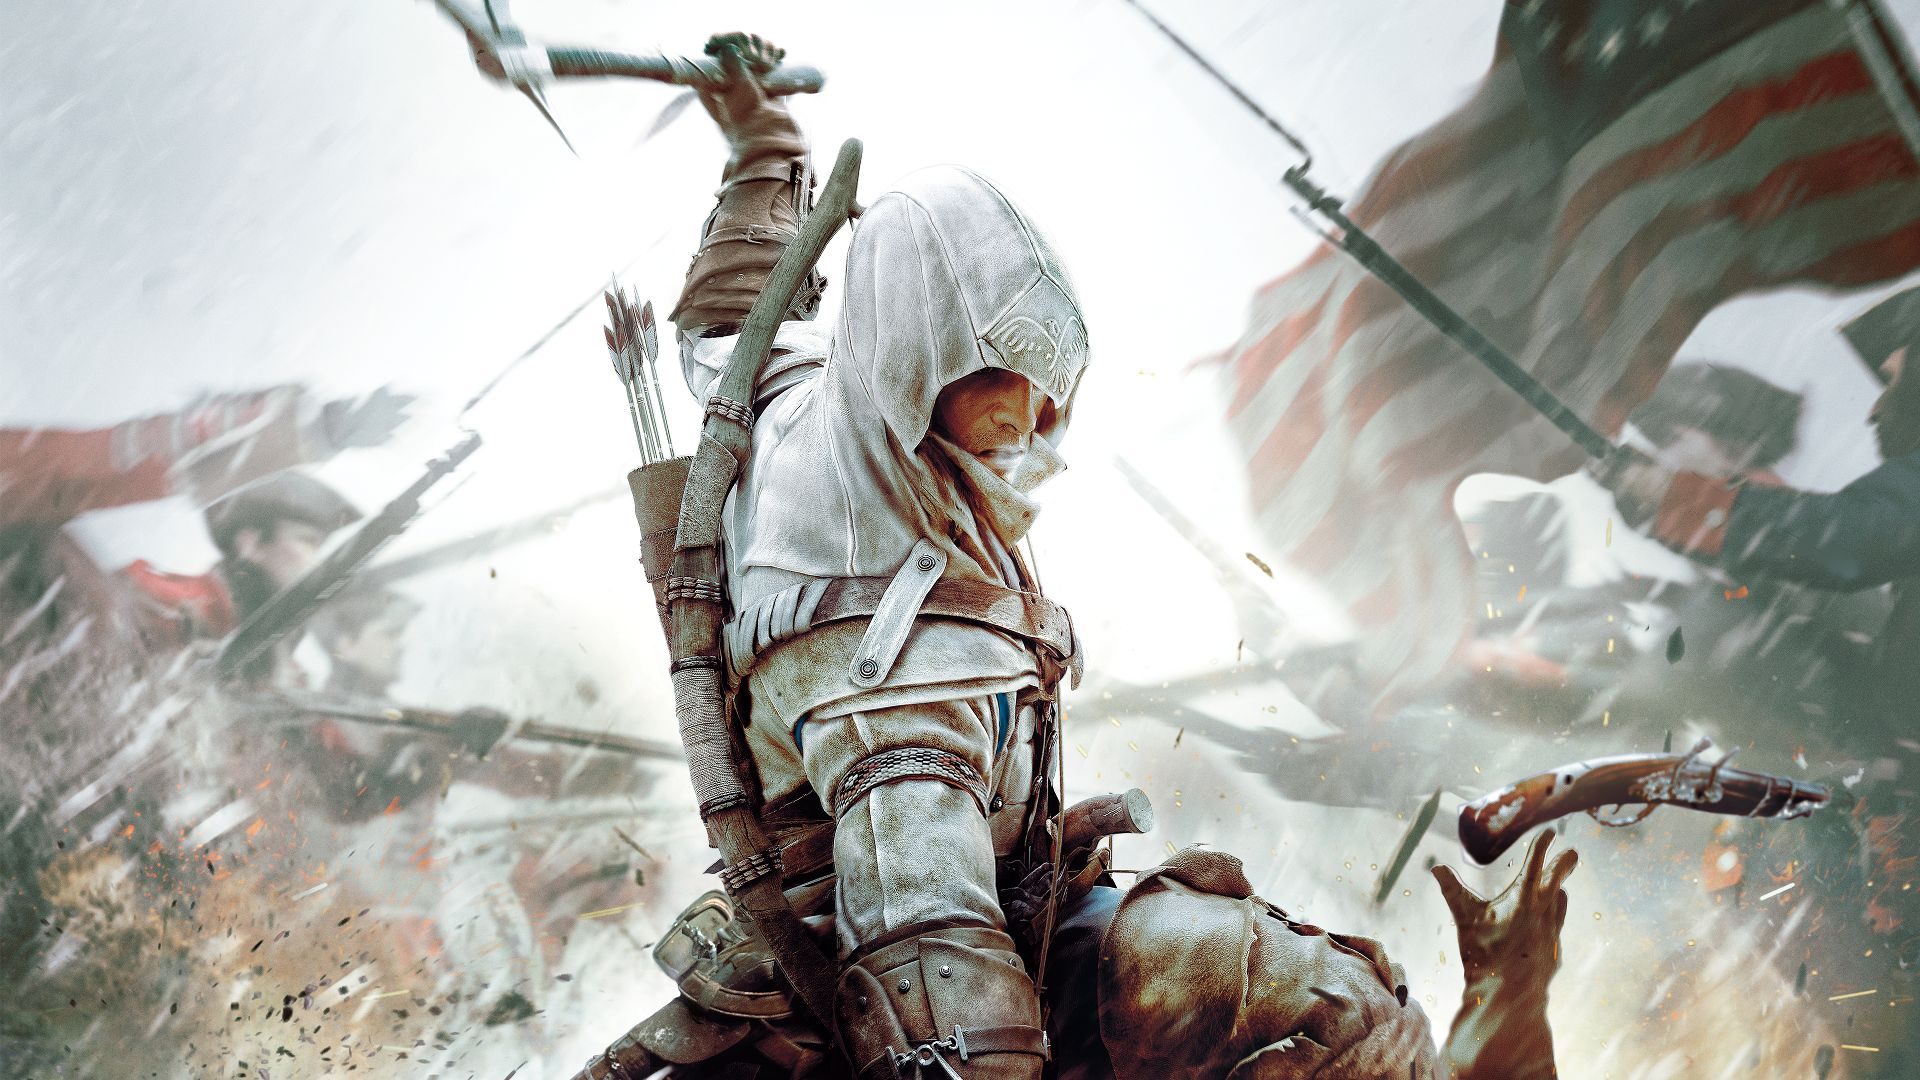 PEGI Publishes Ratings for Assassin's Creed III on Xbox One